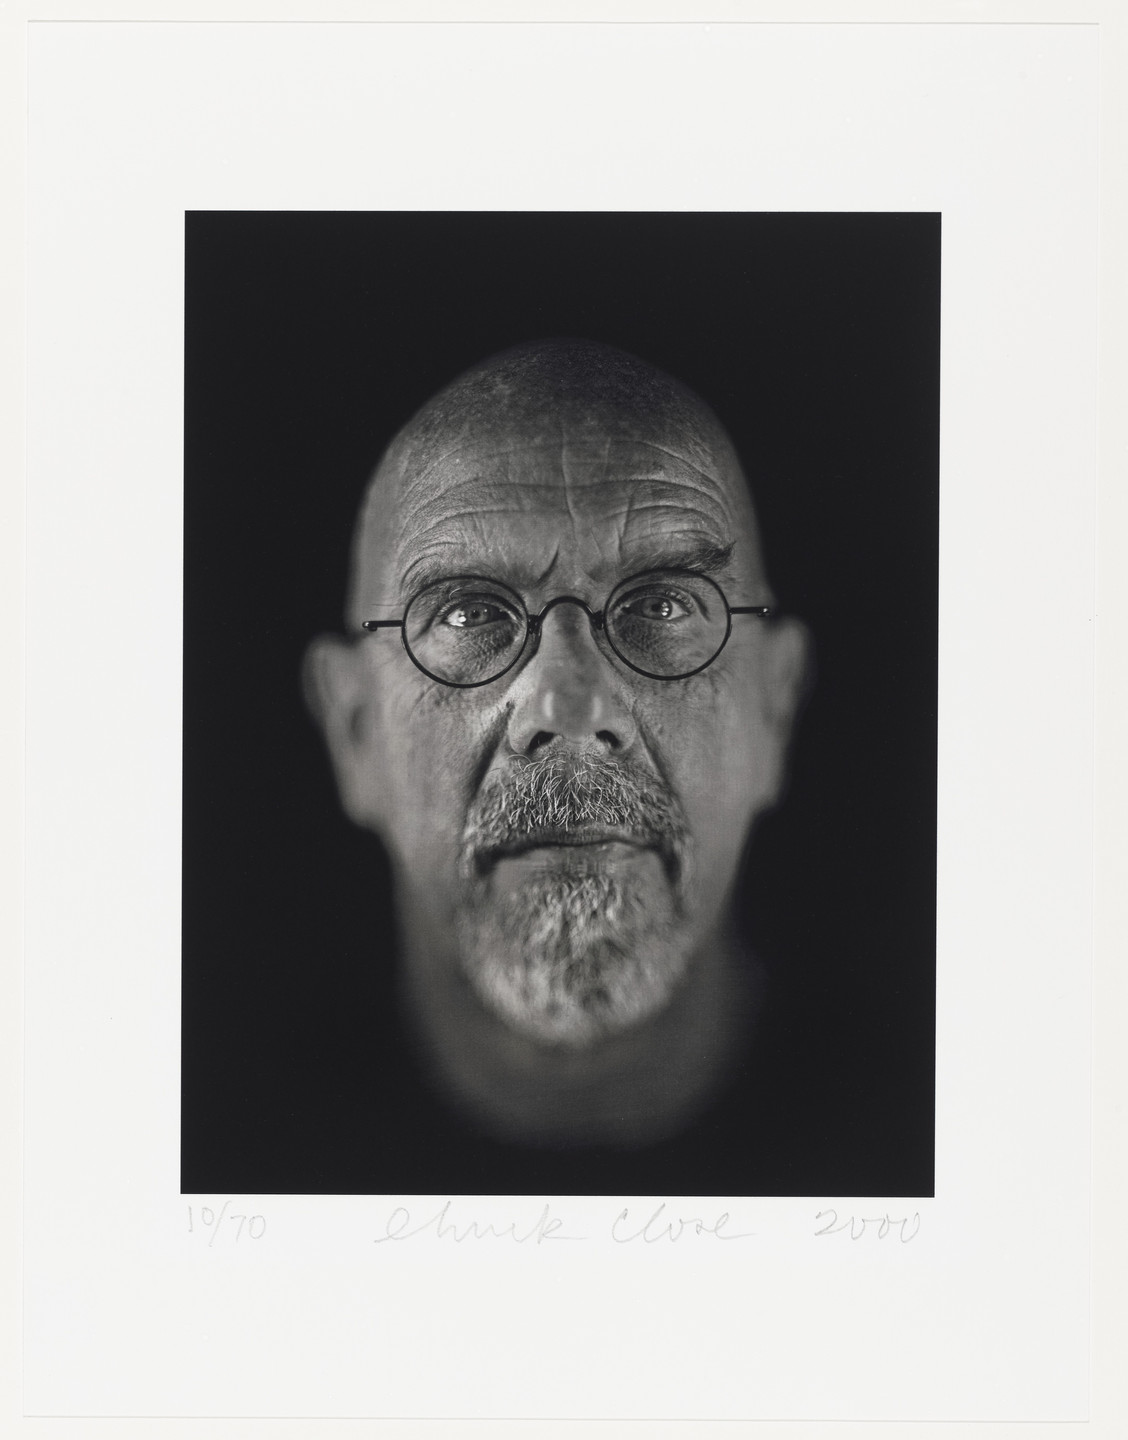 Chuck Close. Self-Portrait (for Parkett no. 60). 2000